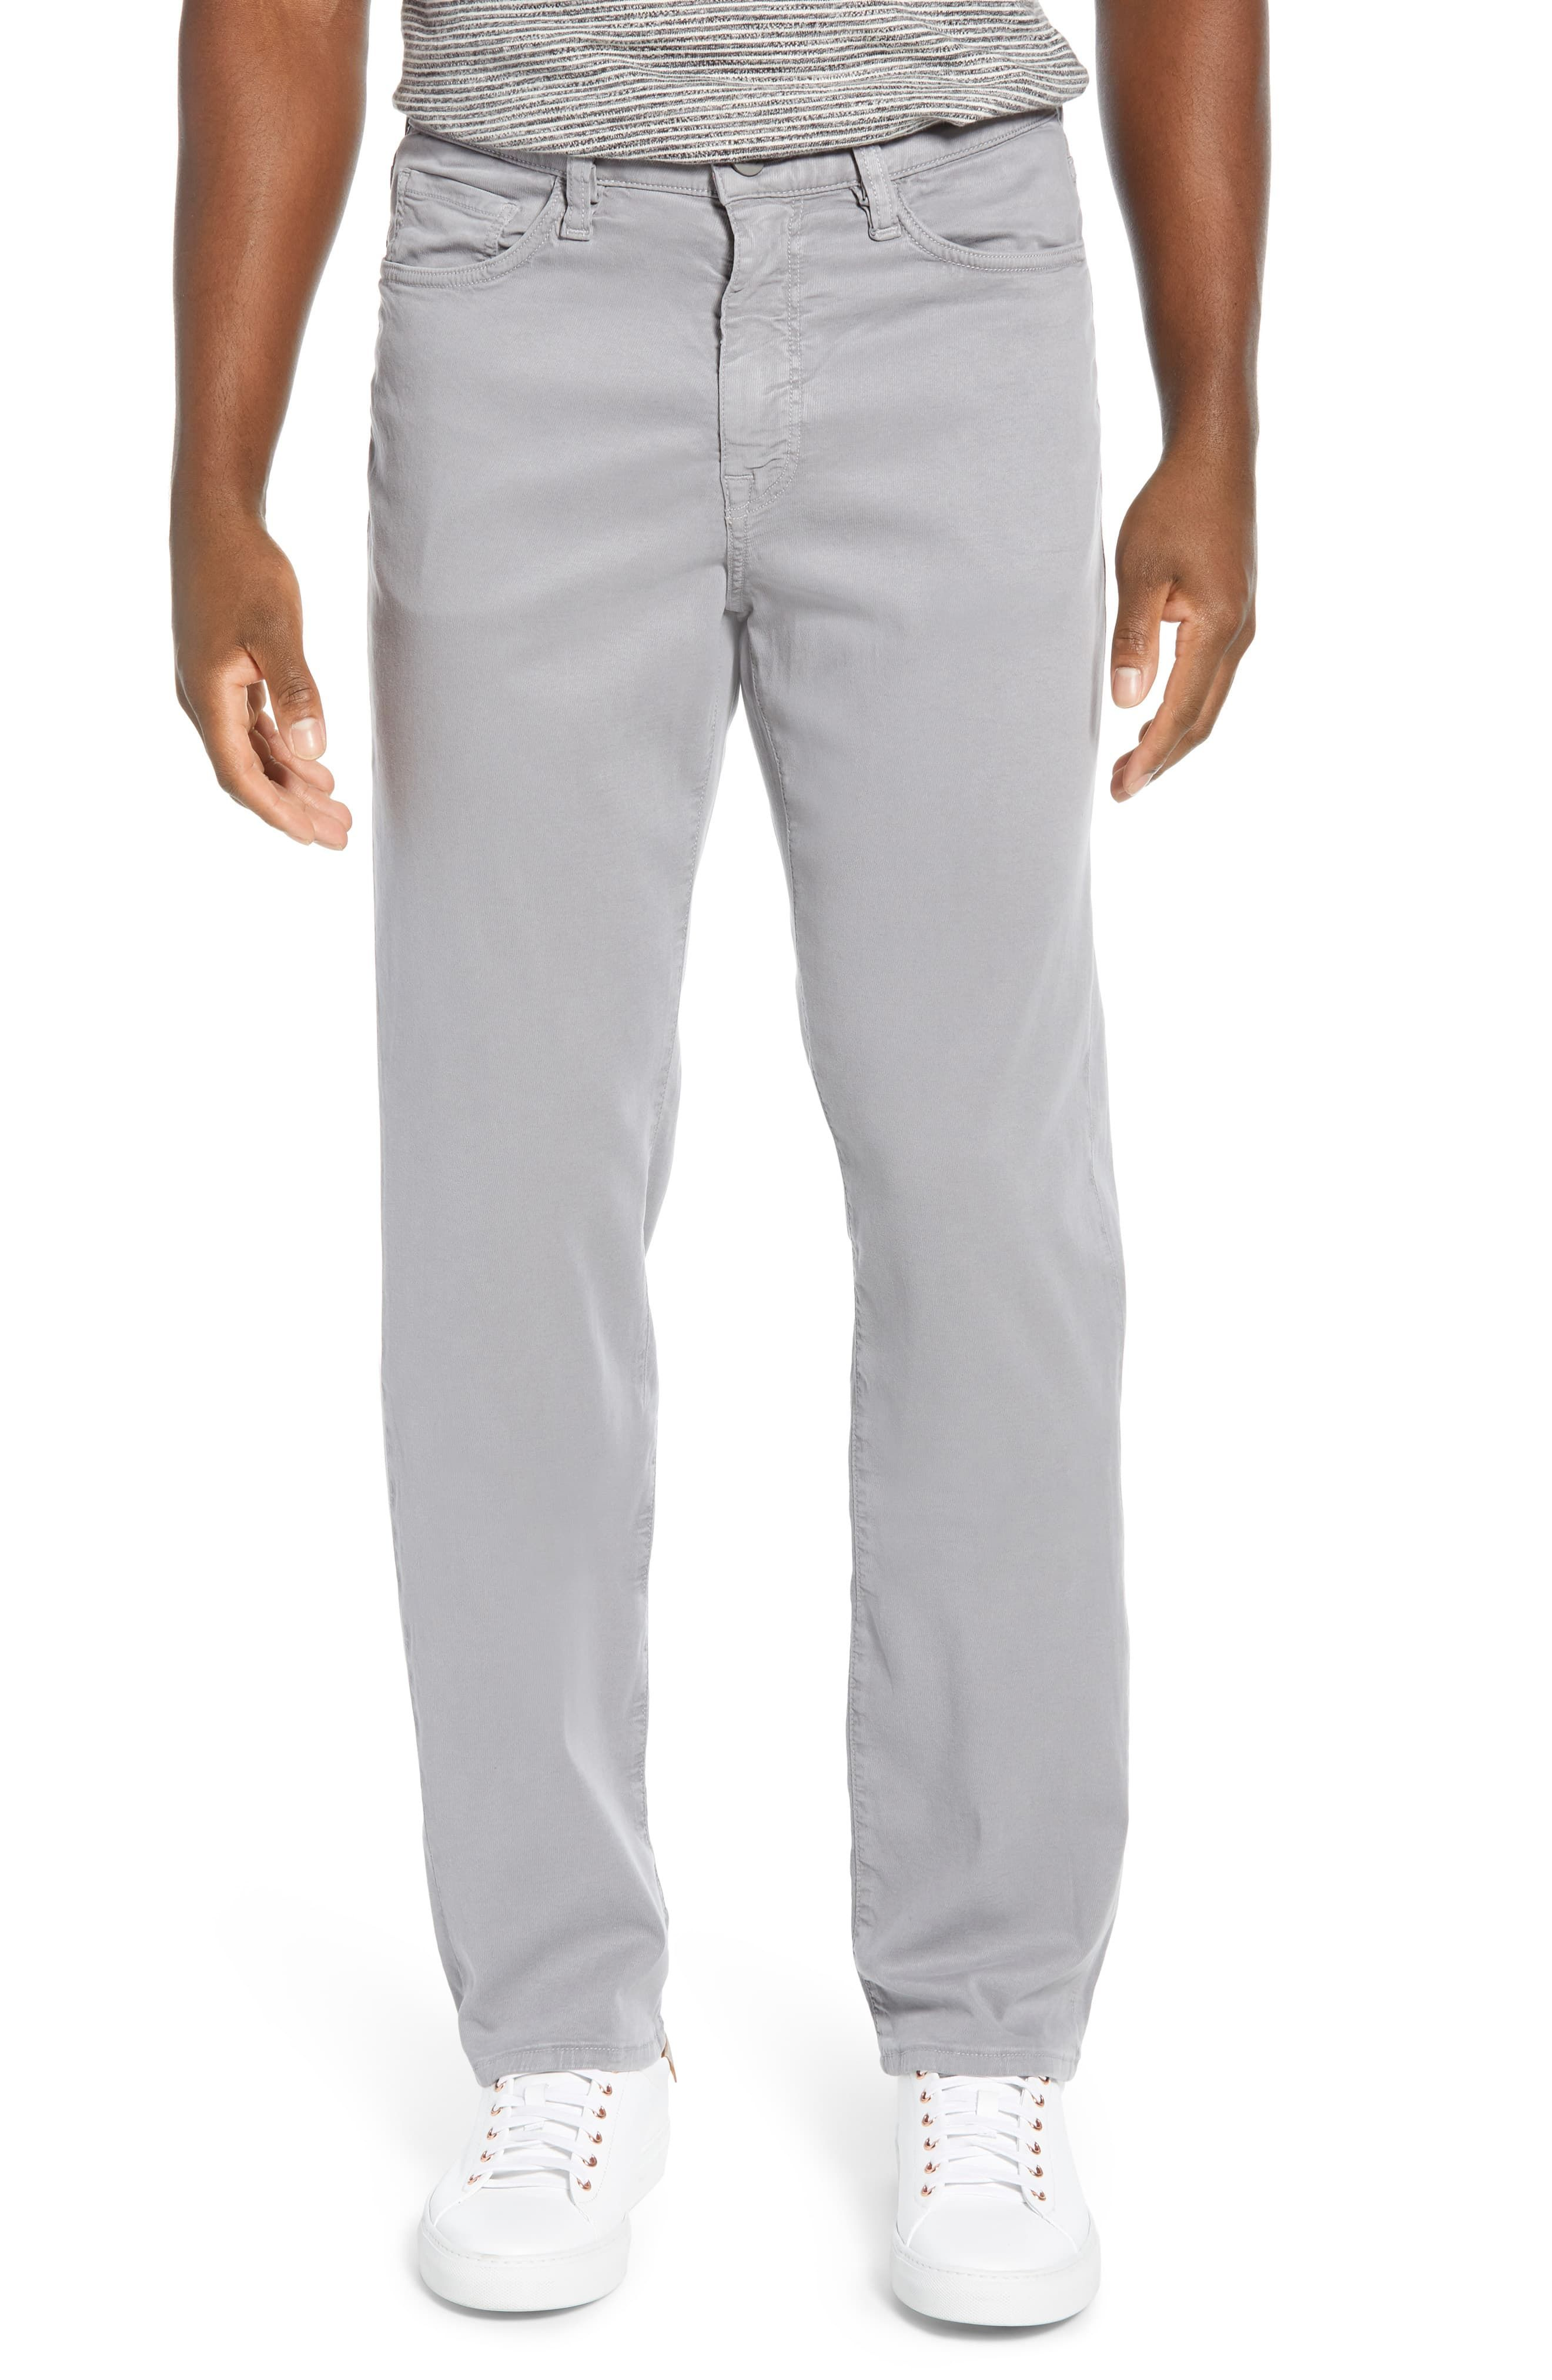 Men's 34 Heritage Charisma Relaxed Fit Jeans, Size 36 x 34